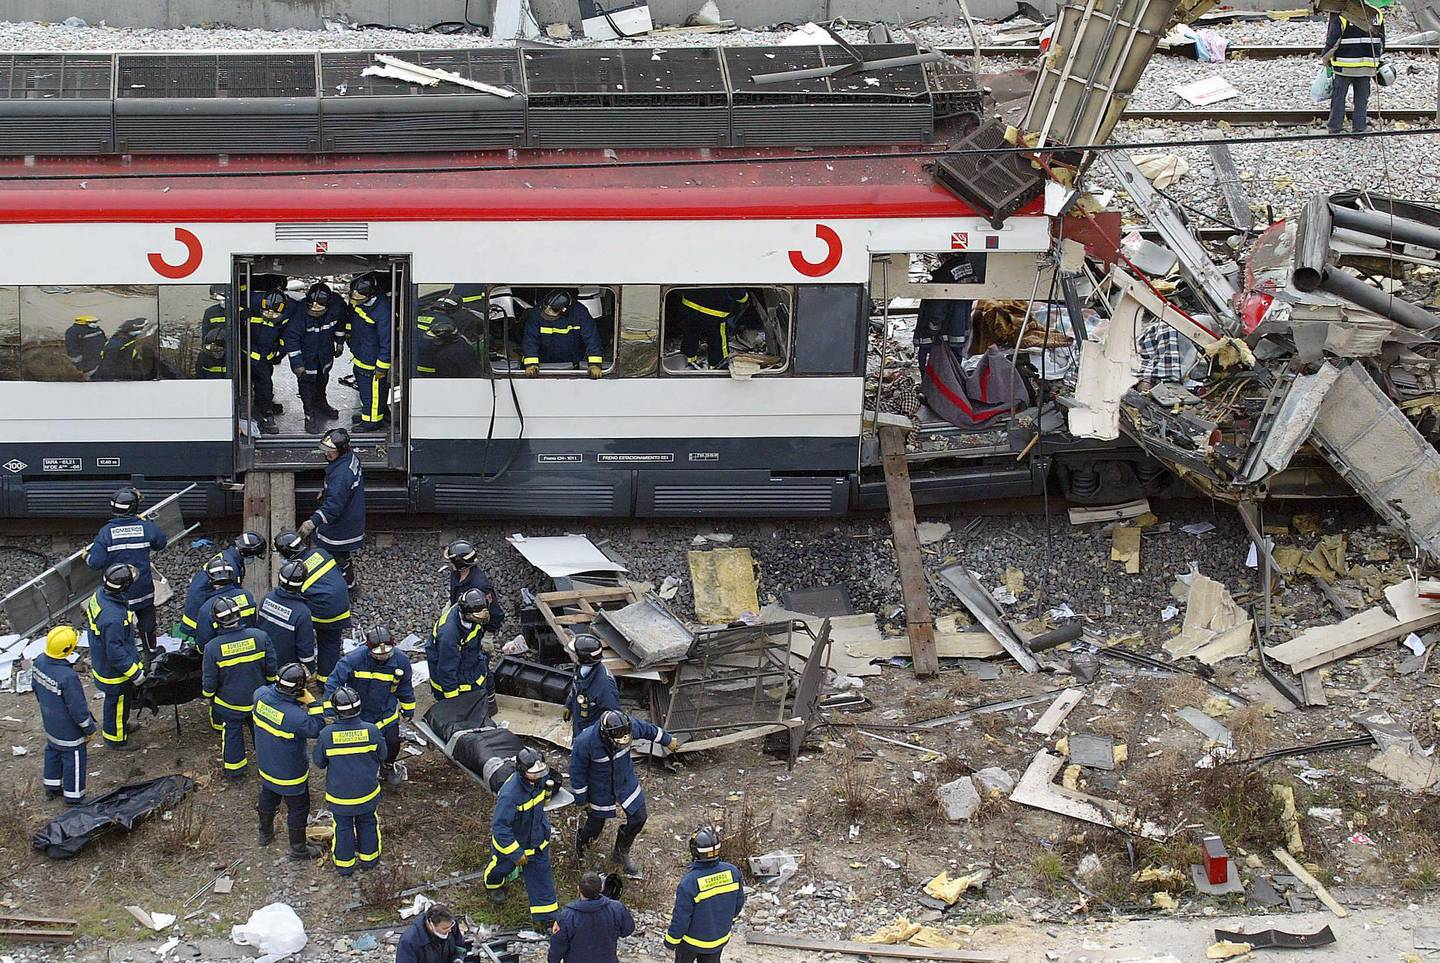 Bodies of victims are evacuated after a train exploded at the Atocha train station in Madrid 11 March 2004. At least 173 people were killed and some 600 injured early 11 March 2004 in near-simultaneous explosions on three trains in Madrid at the height of morning commuter traffic, the Spanish interior ministry said. In what appeared to be a deliberate attack staged only 72 hours ahead of Spanish general elections, the blasts went off on a long-distance high-speed carrier and two suburban trains packed with commuters. AFP PHOTO PIERRE-PHILIPPE MARCOU (Photo by PIERRE-PHILIPPE MARCOU / AFP)